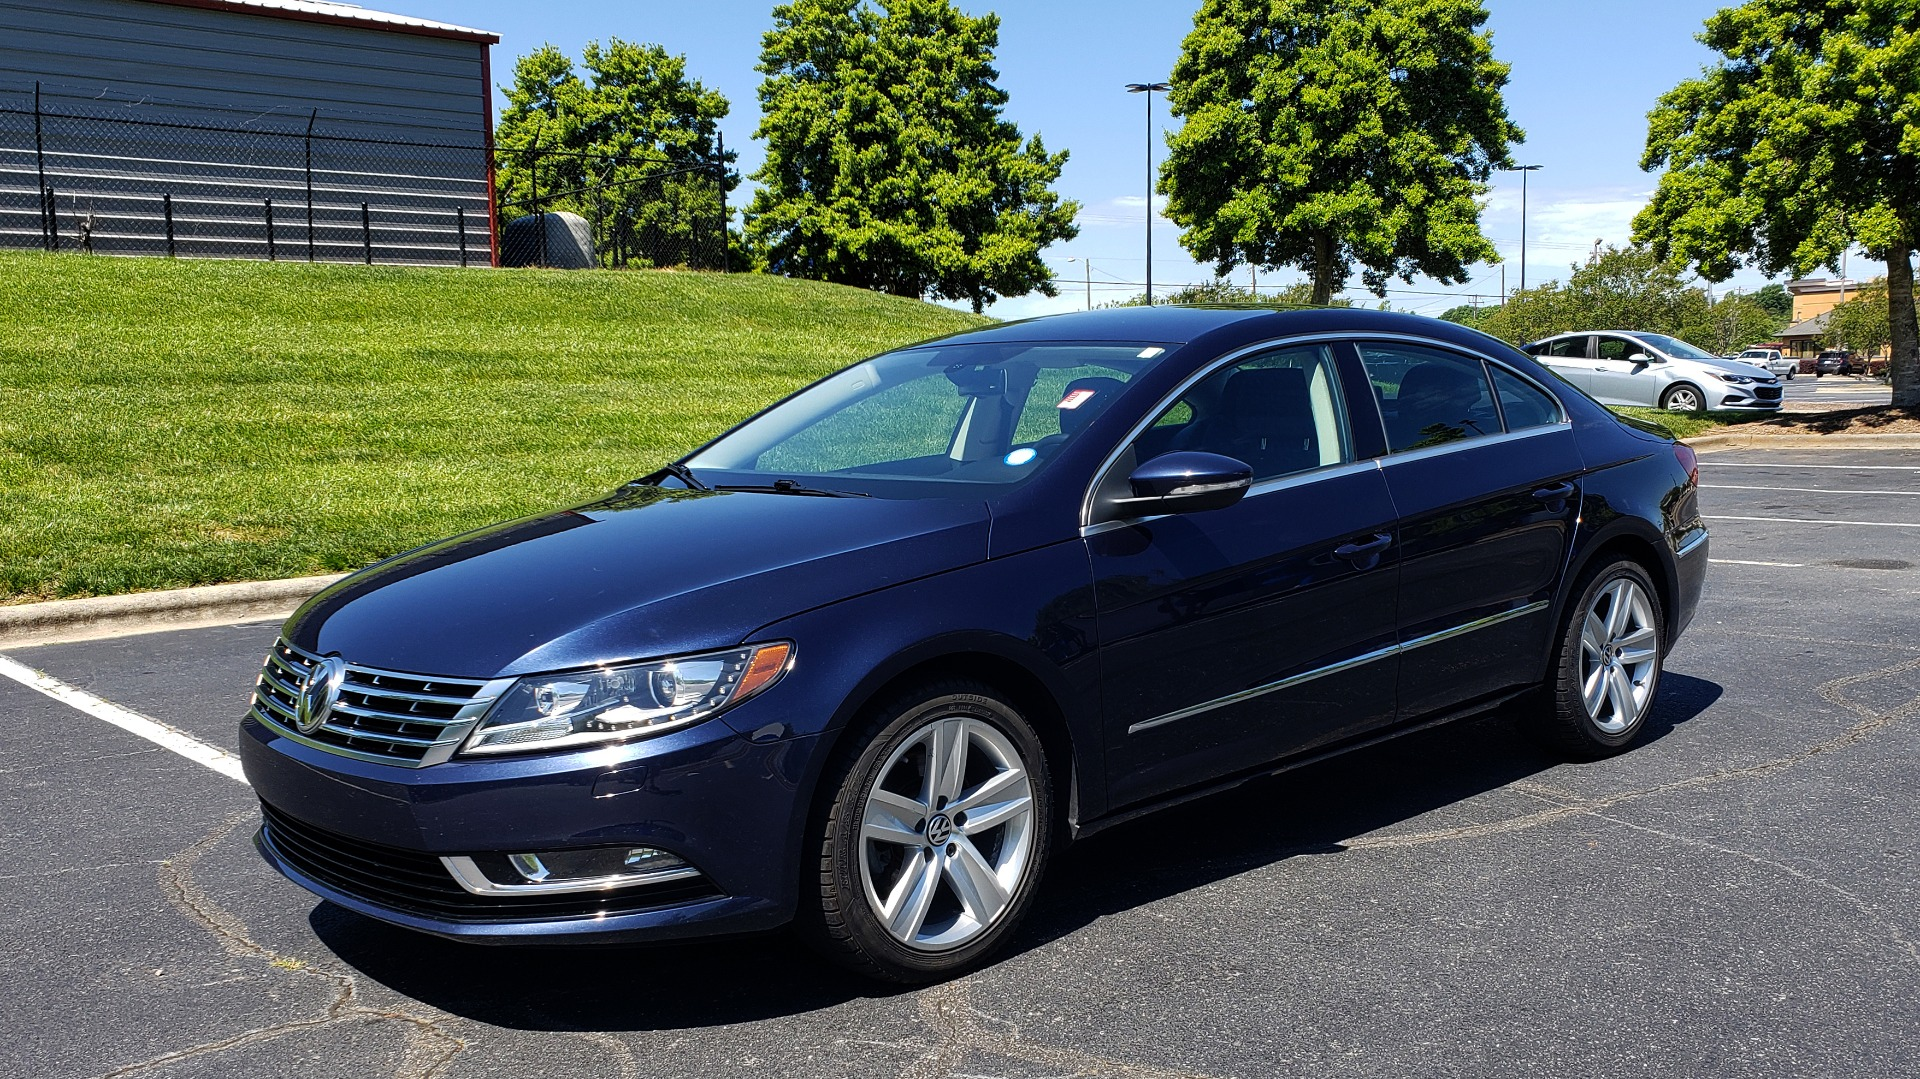 Used 2013 Volkswagen CC SPORT W/LIGHTING PKG / 2.0L 4-CYL / DSG 6-SPD AUTO for sale Sold at Formula Imports in Charlotte NC 28227 1